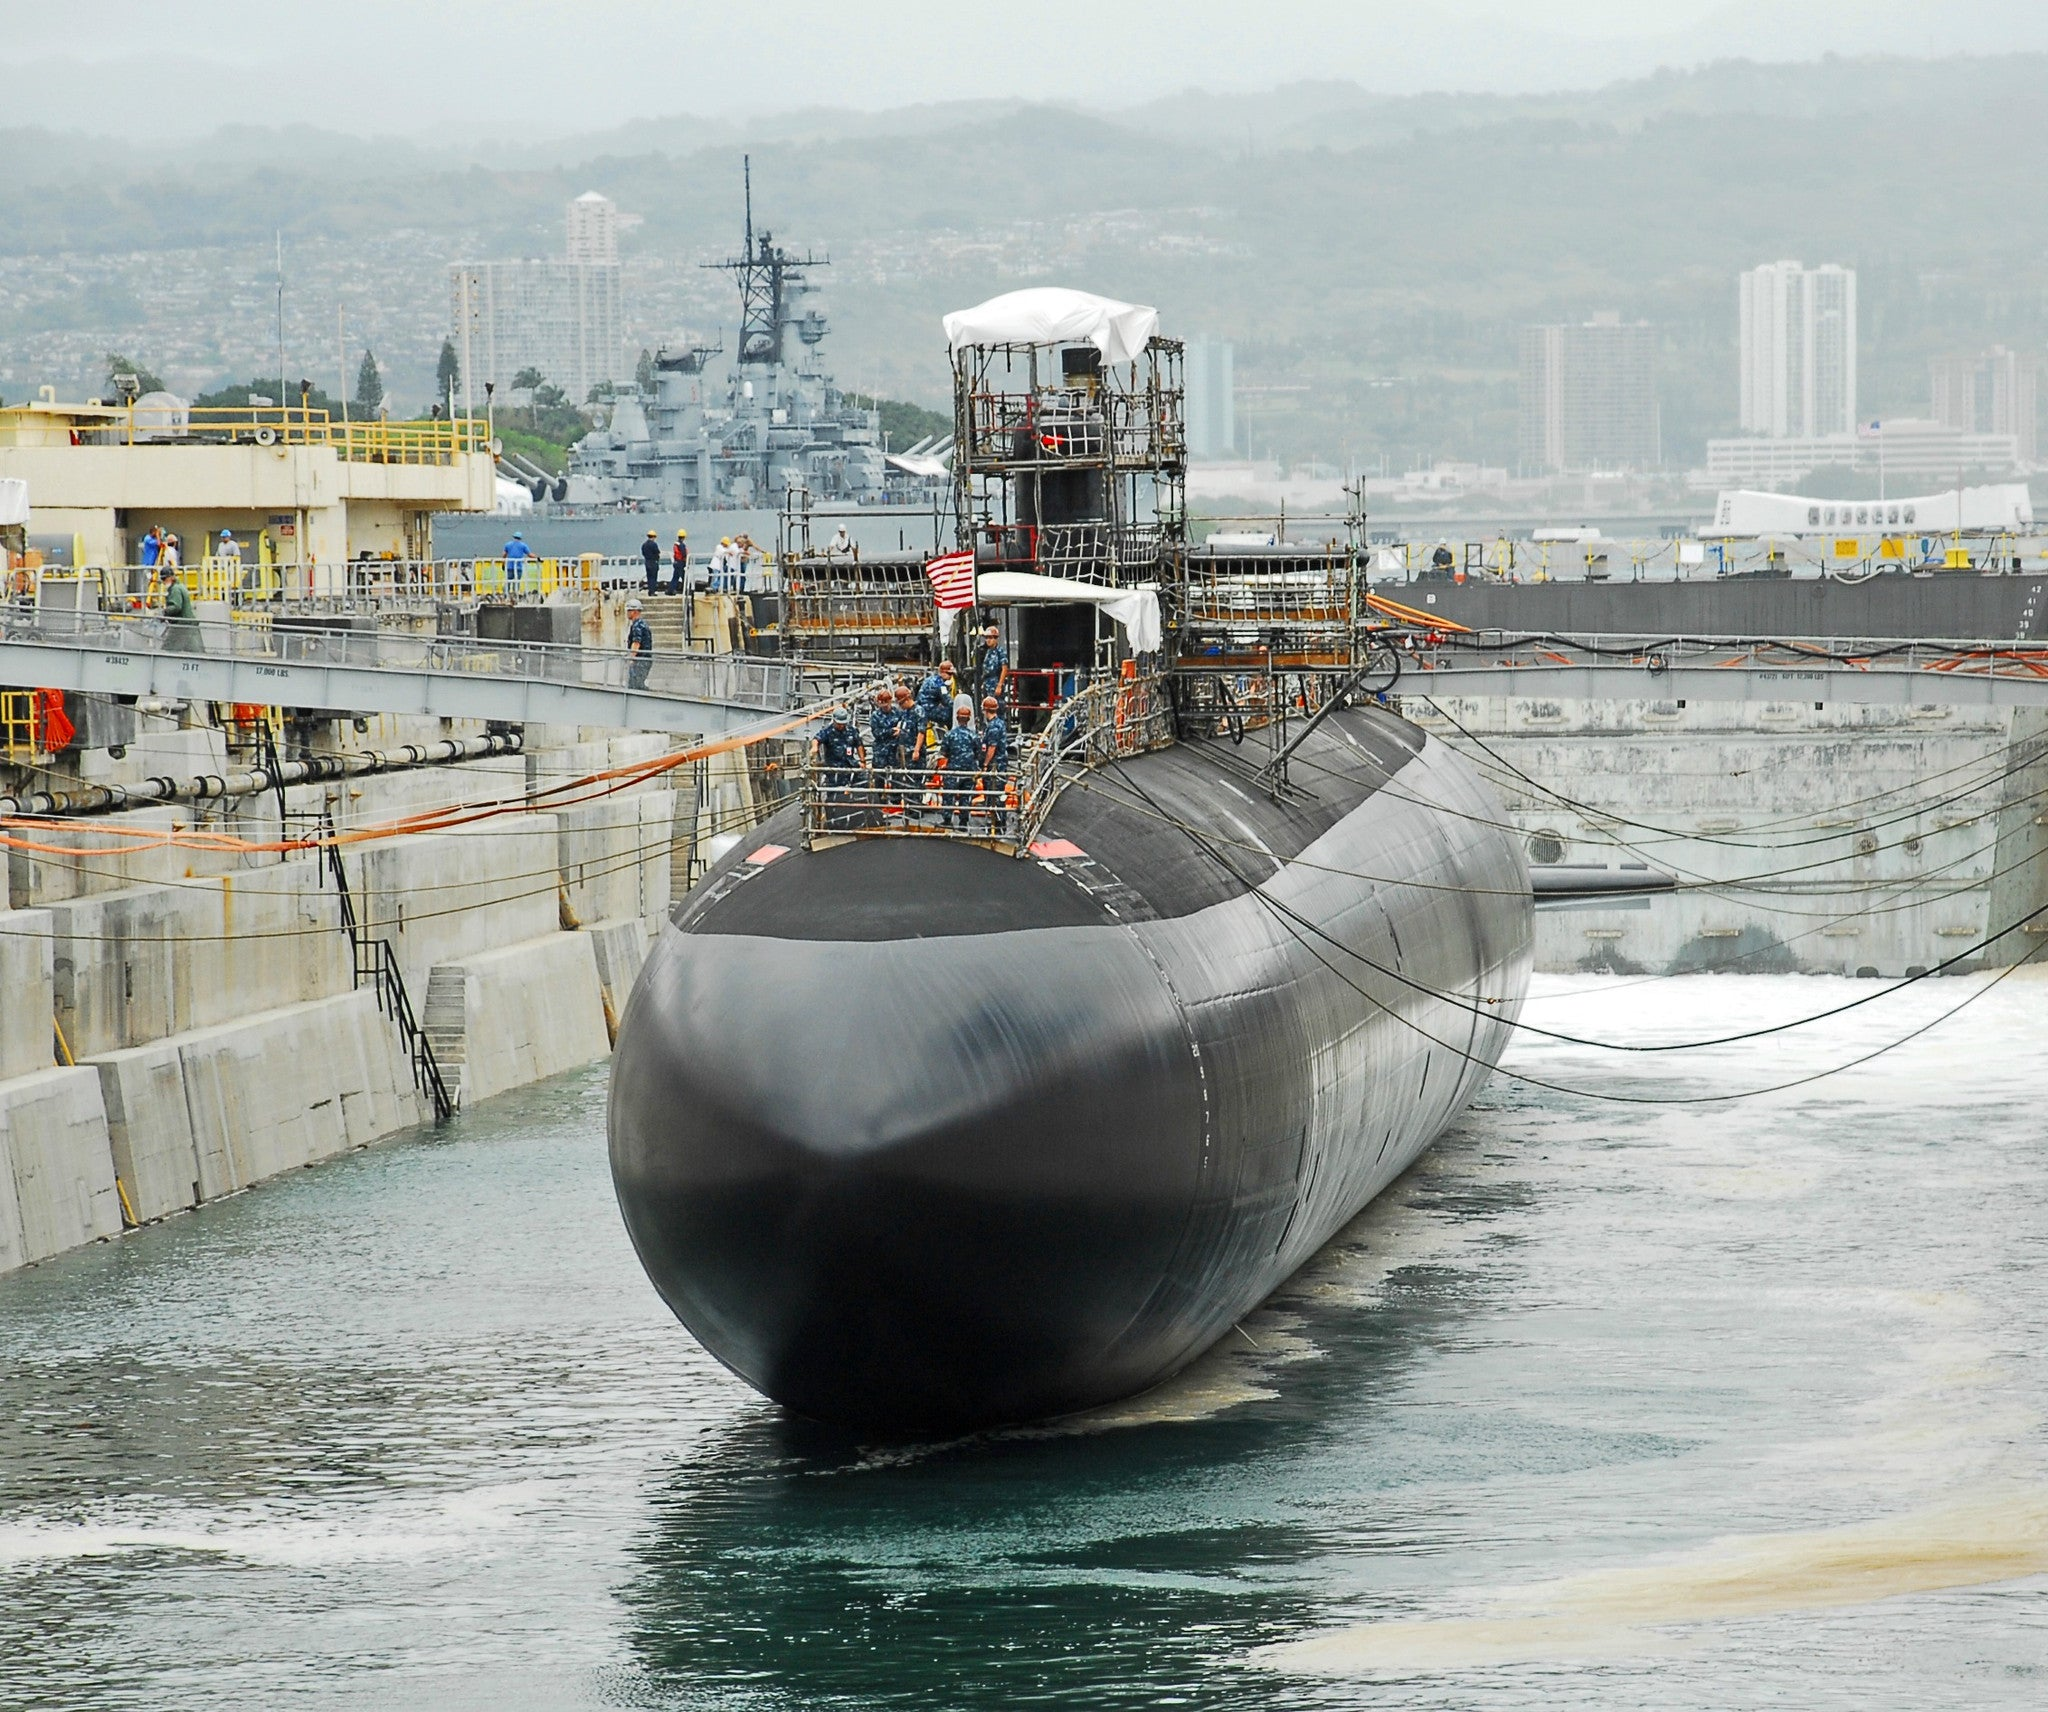 "Submarine USS City of Corpus Christi SSN-705 Dry Dock at Pearl Harbor May 18, 2010 - 8 x 10"" Photograph"